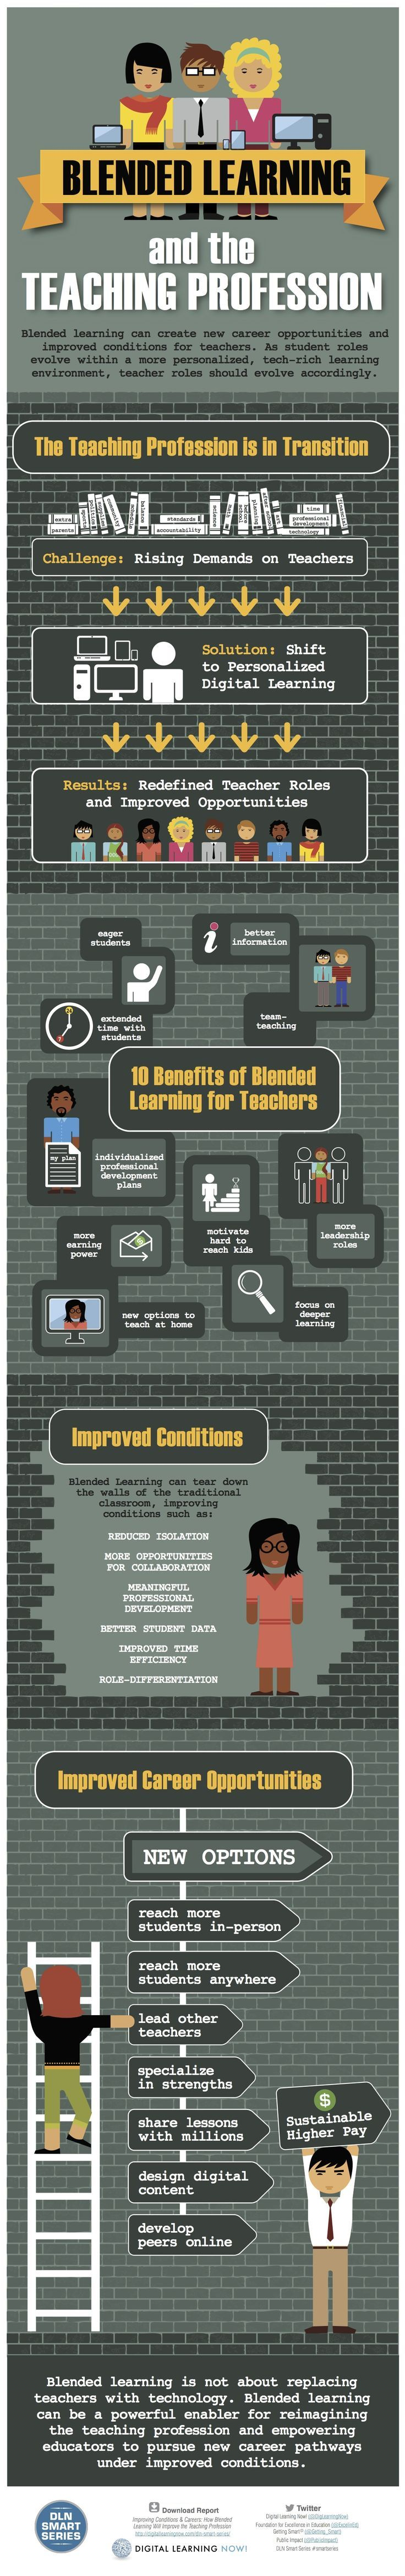 Blended Learning and Teaching Profession Infographic - e-Learning Infographics